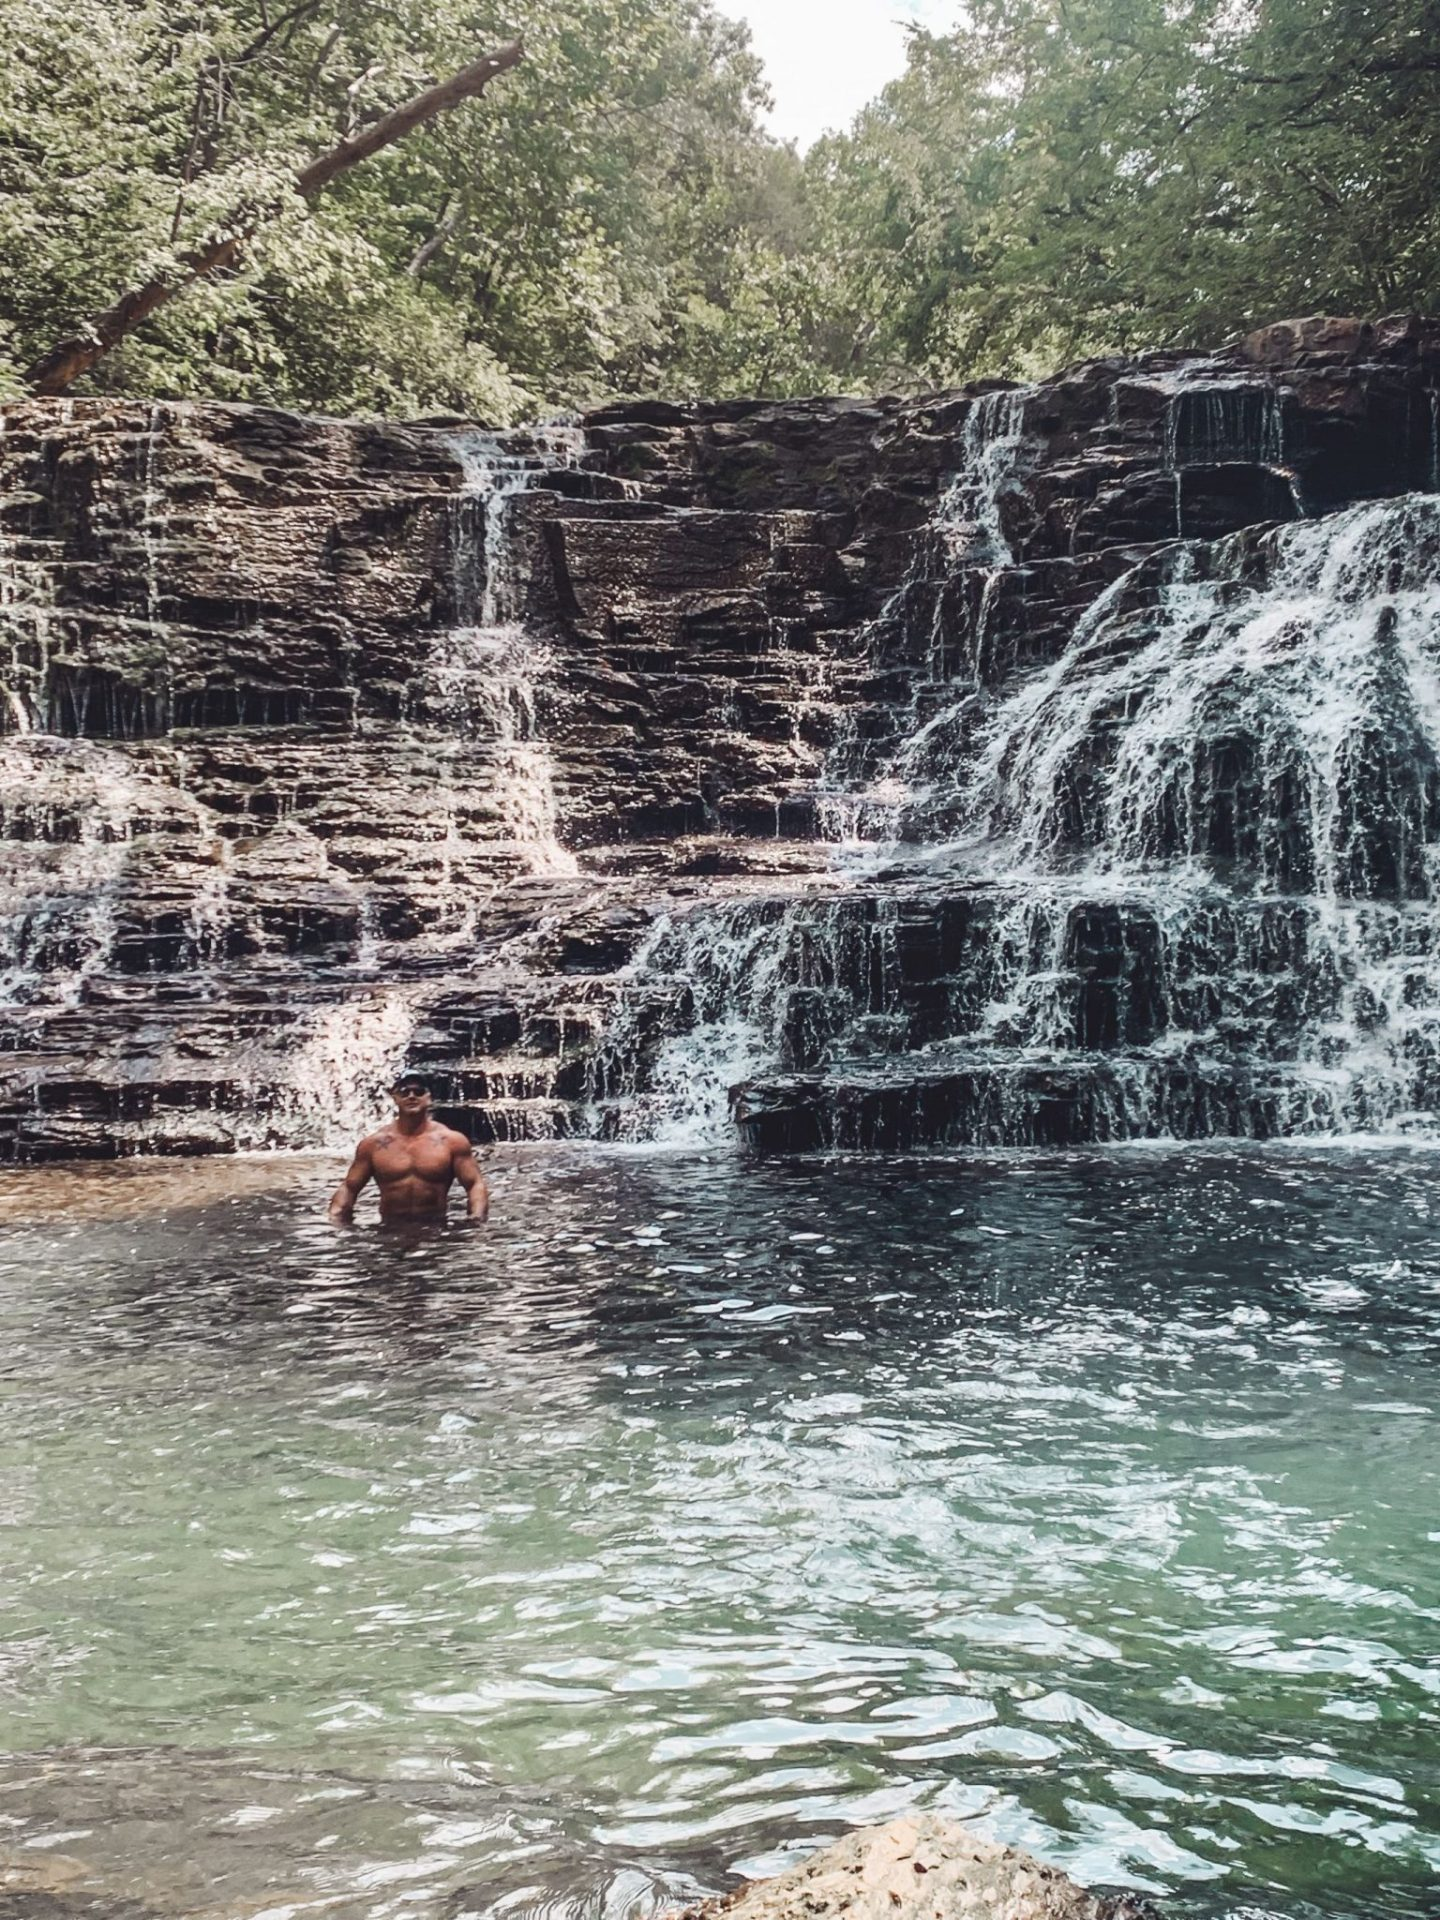 Family-Friendly Waterfall Hiking Trails in Nashville, TN by popular Nashville blog, Modern Day Moguls: image of a man standing in the water at the base of Rutledge Falls in Tullahoma, TN.